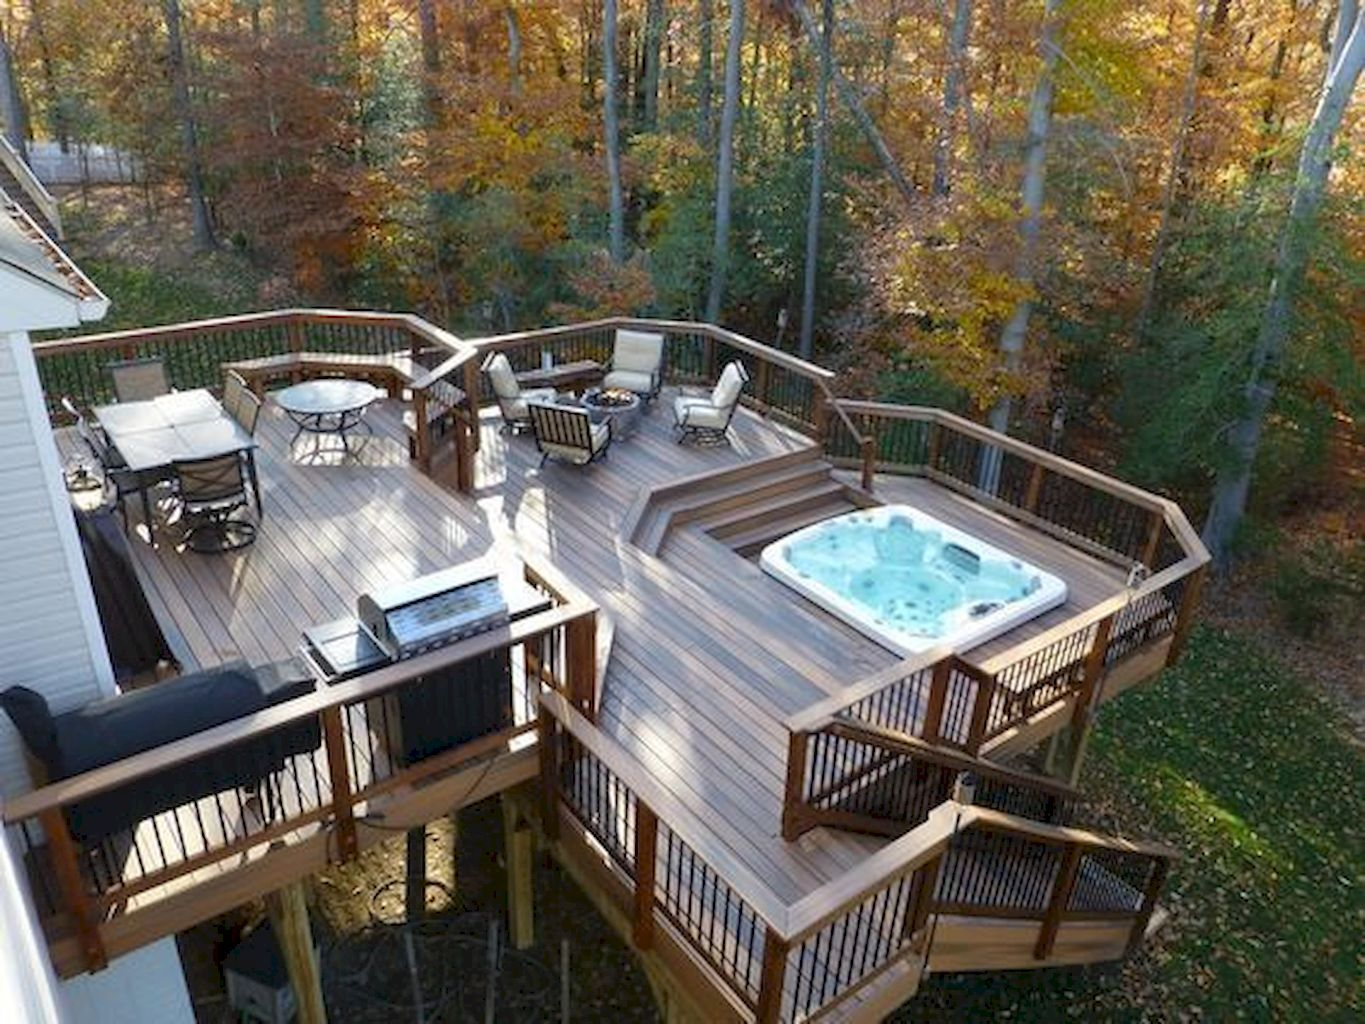 60 Stunning Backyard Patio And Deck Design Ideas With Images